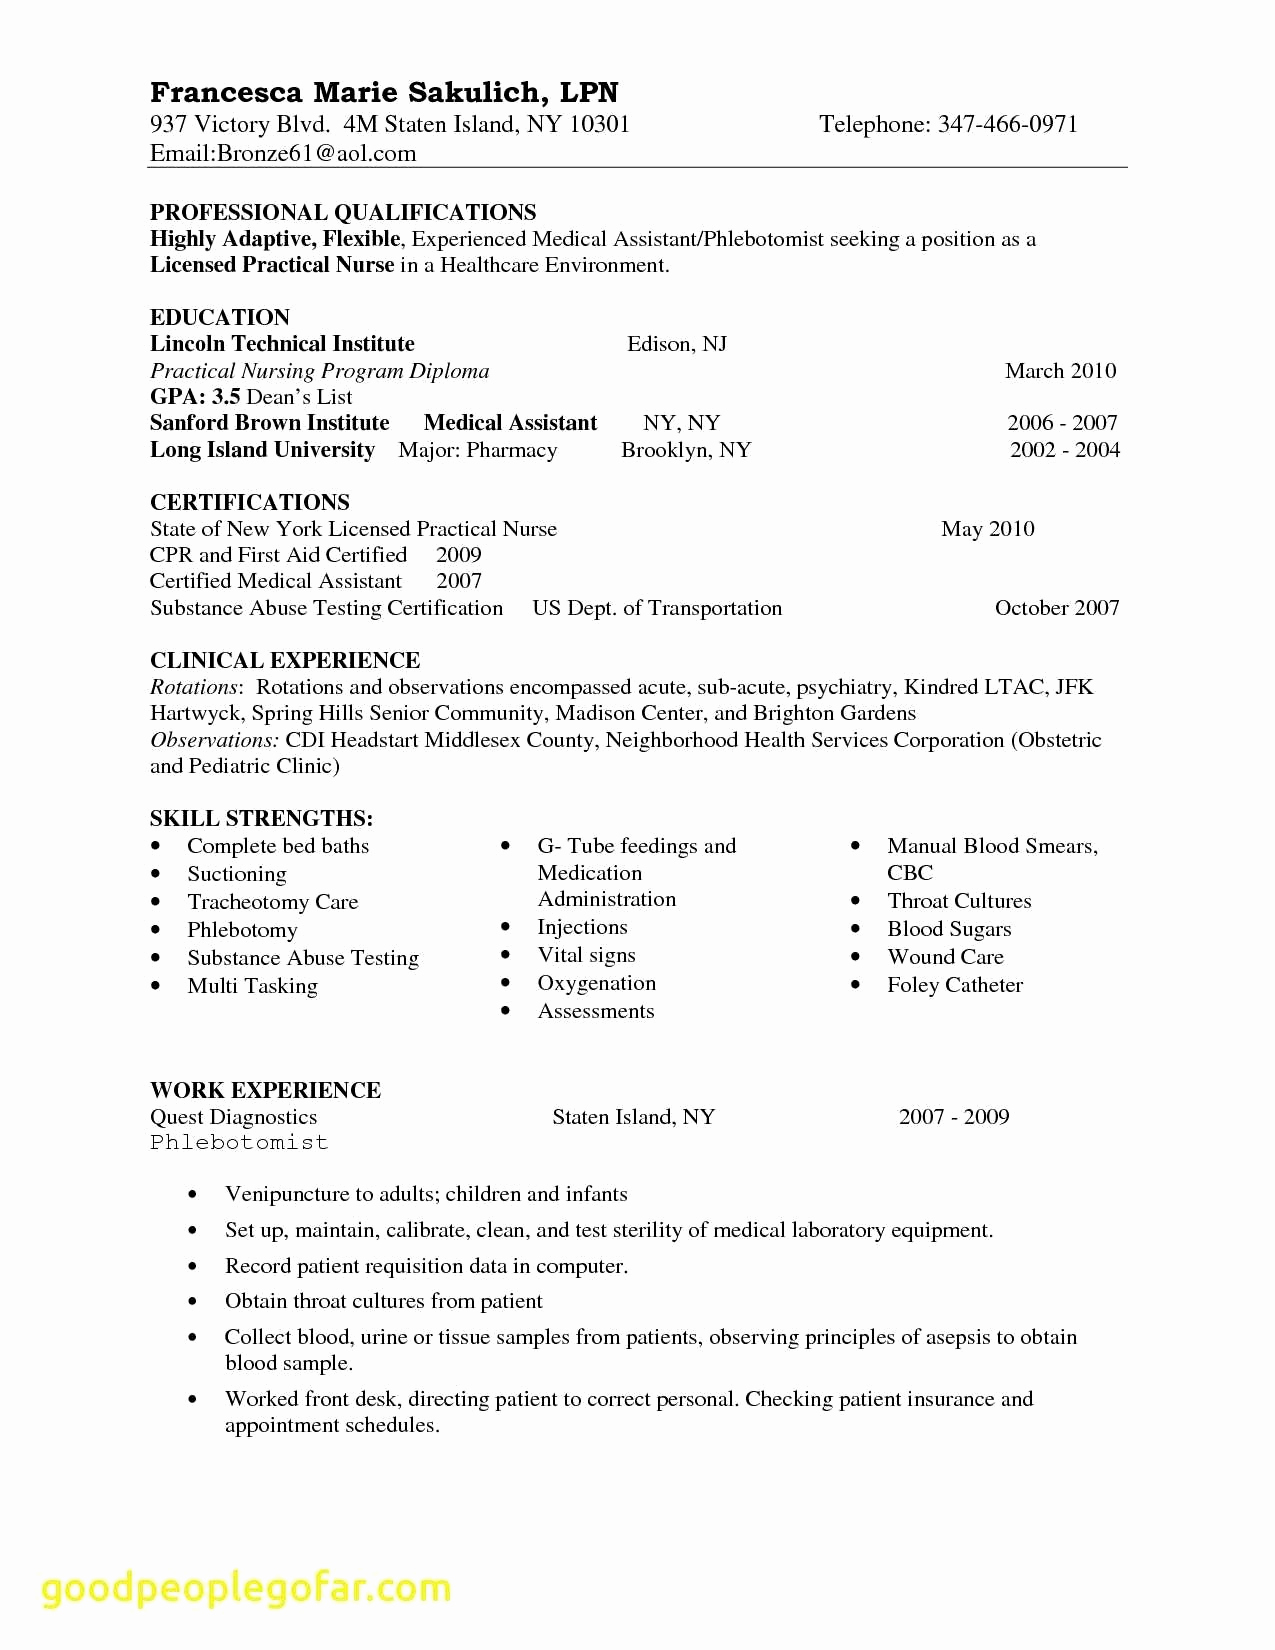 Home Care Nurse Resume - Home Care Nursing Resume Nursing Resume Templates Word